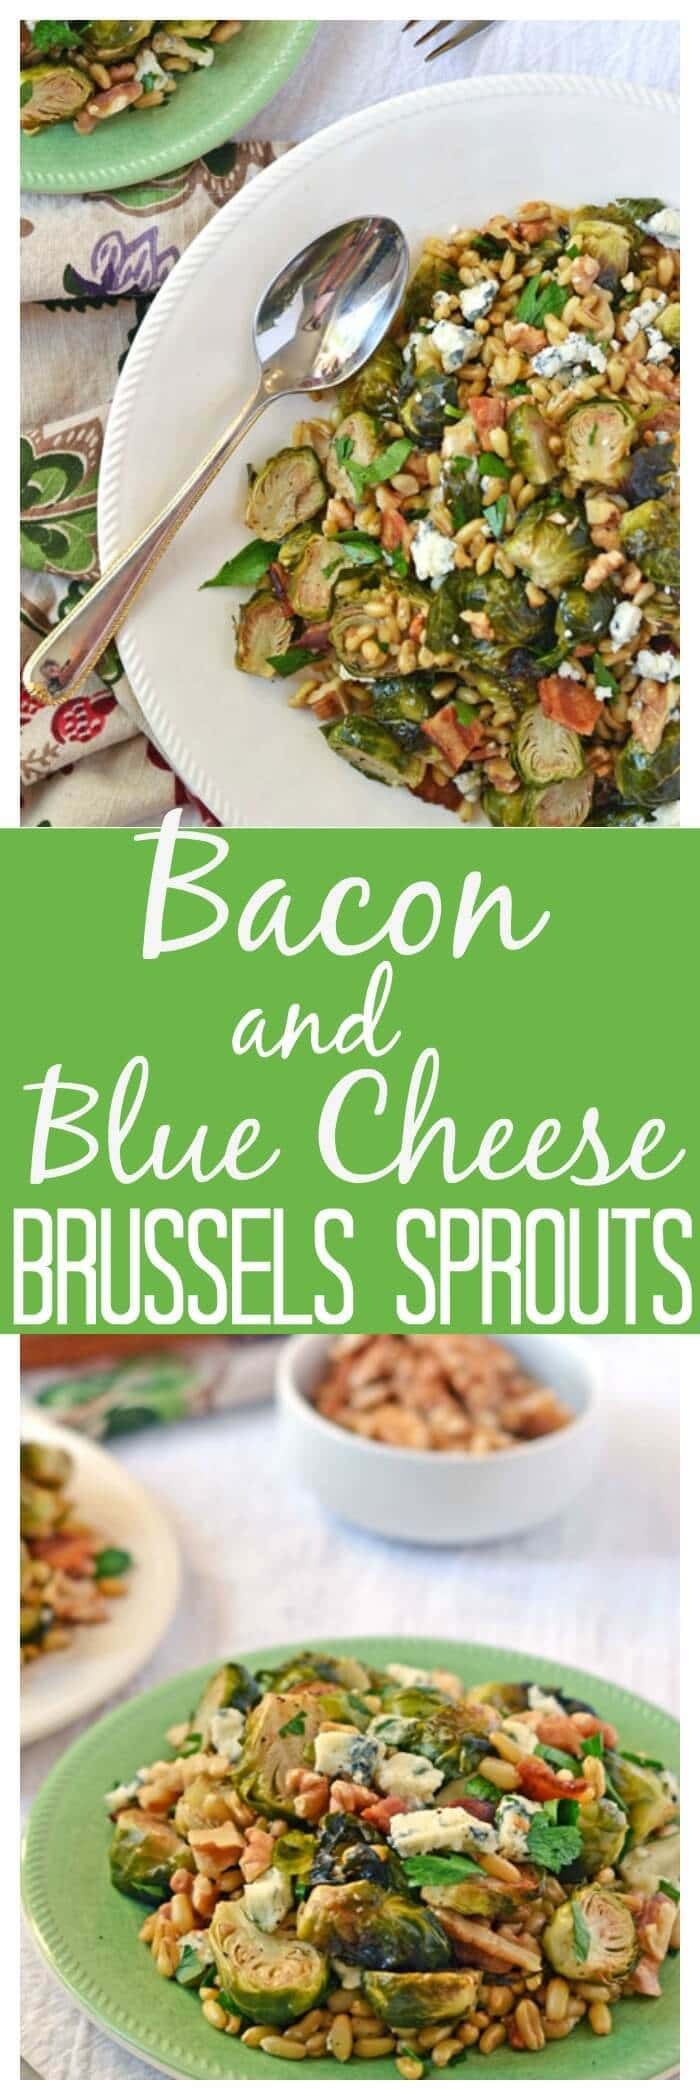 Bacon and Blue Cheese Brussels Sprouts